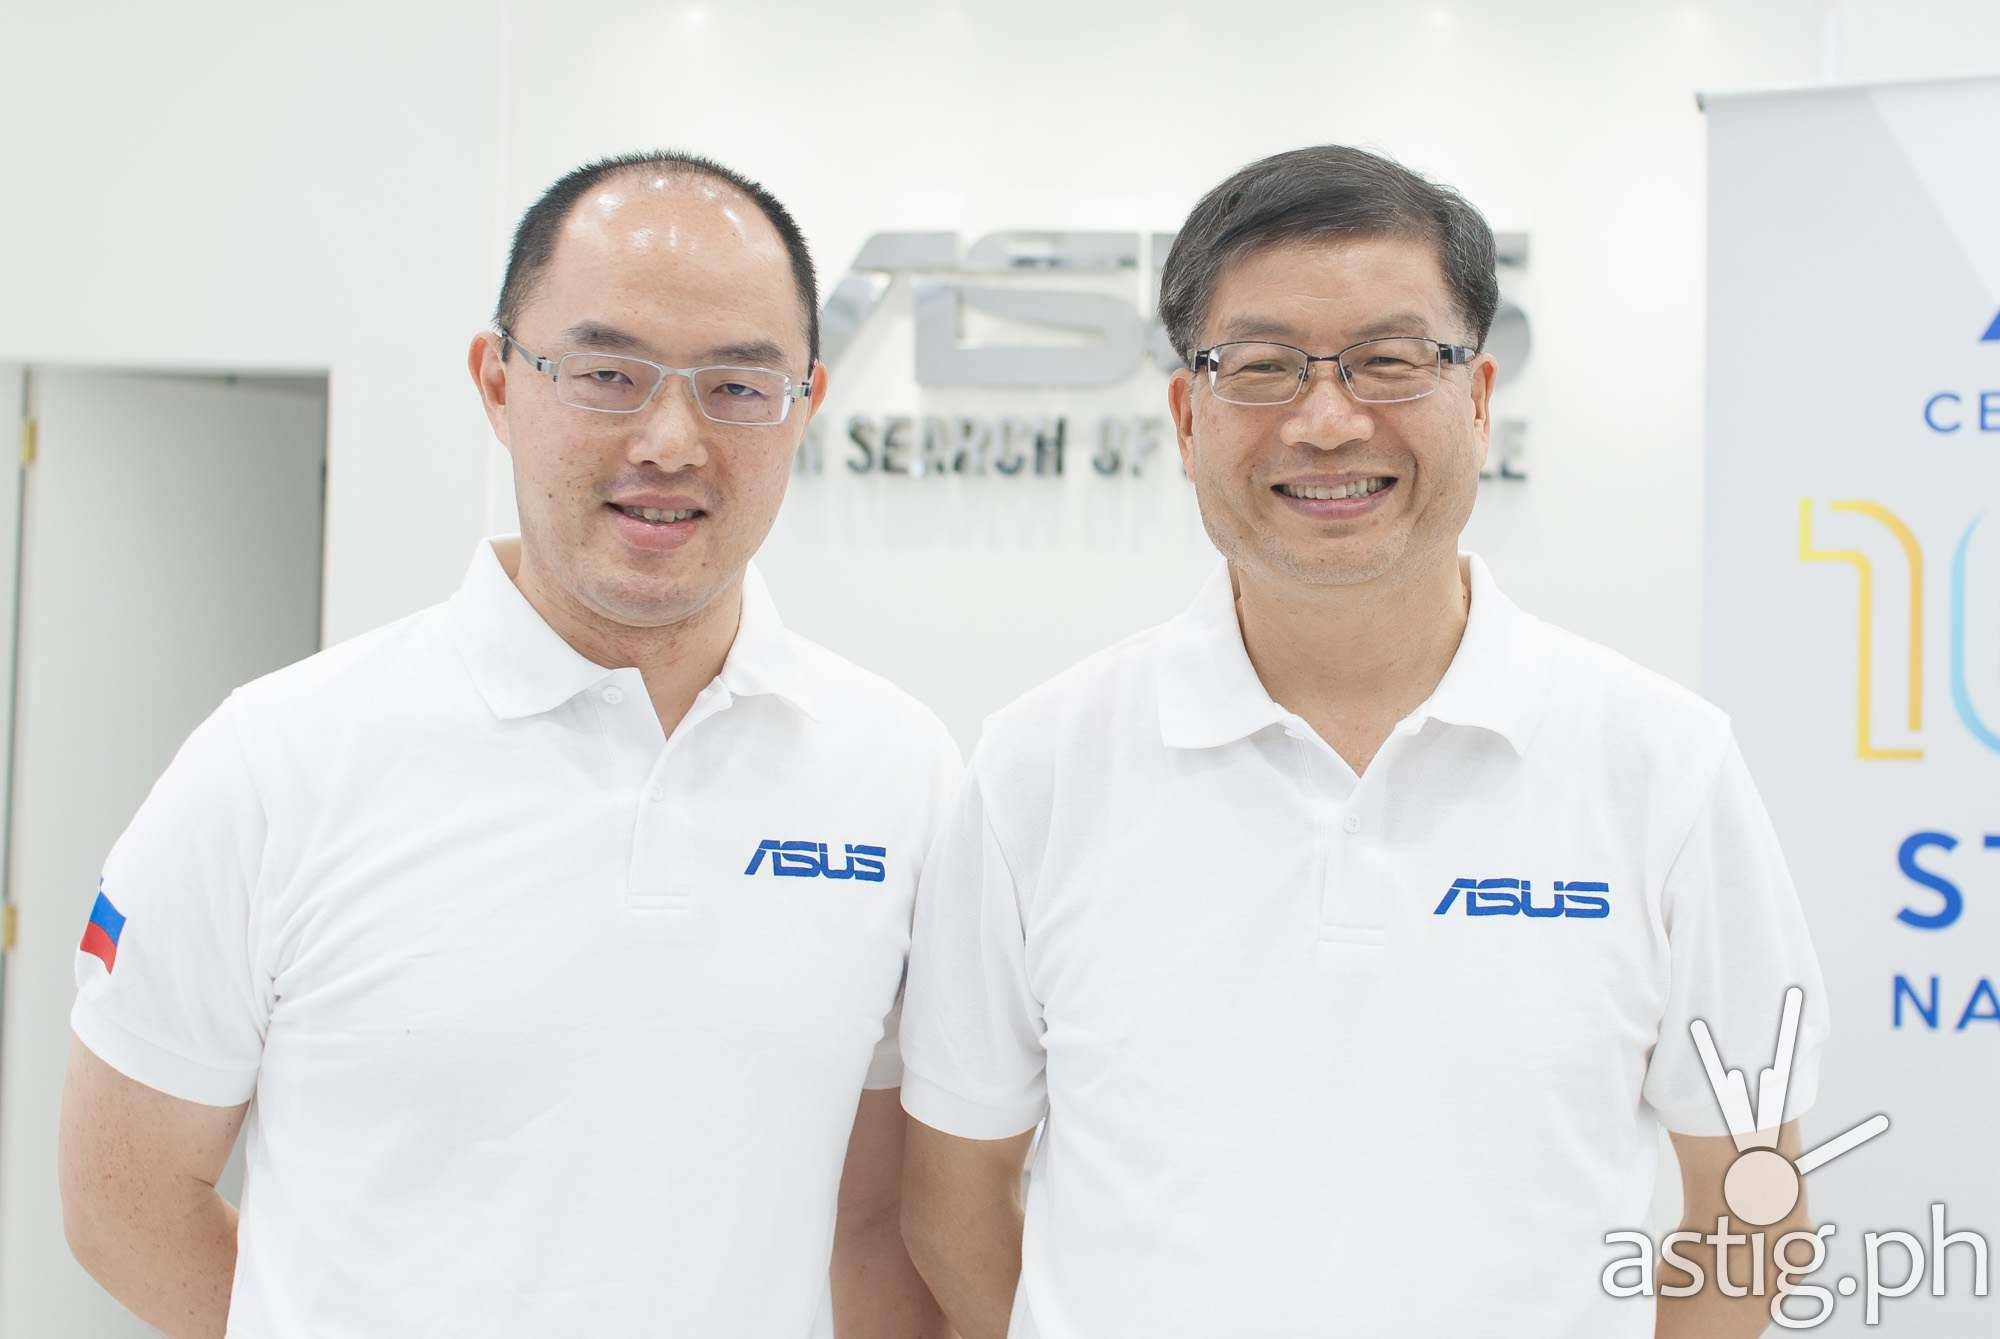 ASUS Philippines Country Manager George Su with ASUS Global CEO Jerry Shen